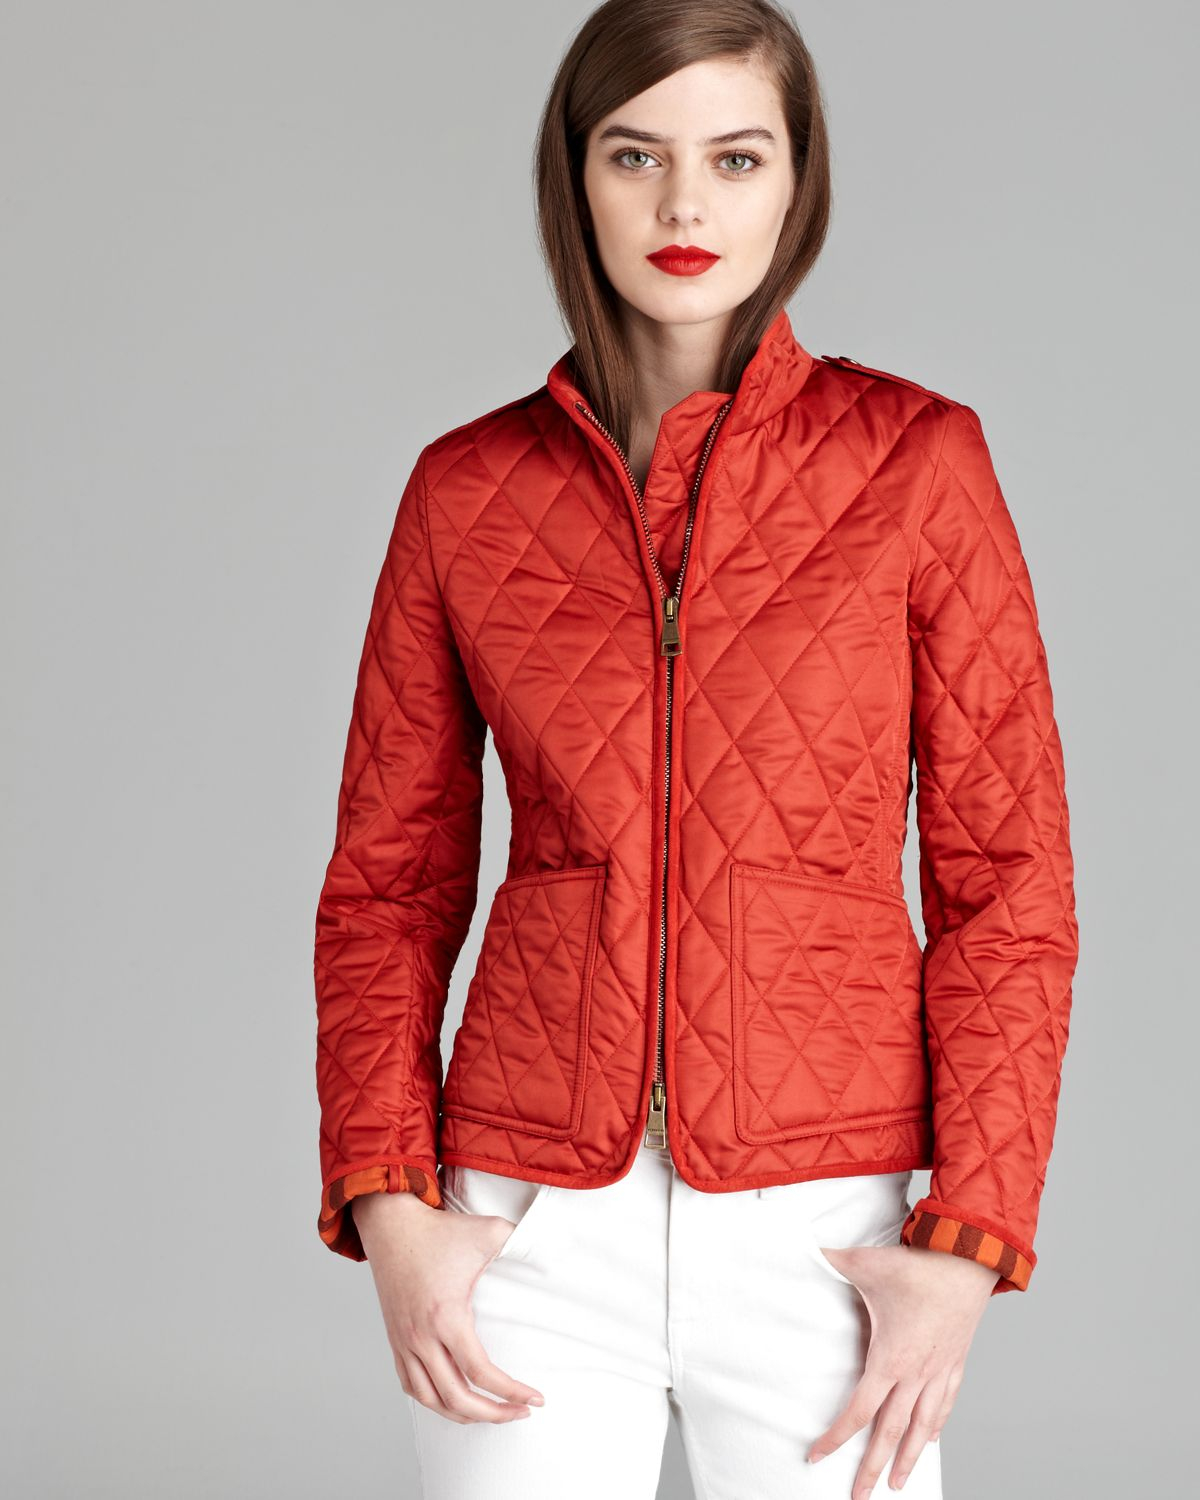 Lyst - Burberry brit Edgefield Quilted Jacket in Orange : red burberry quilted jacket - Adamdwight.com